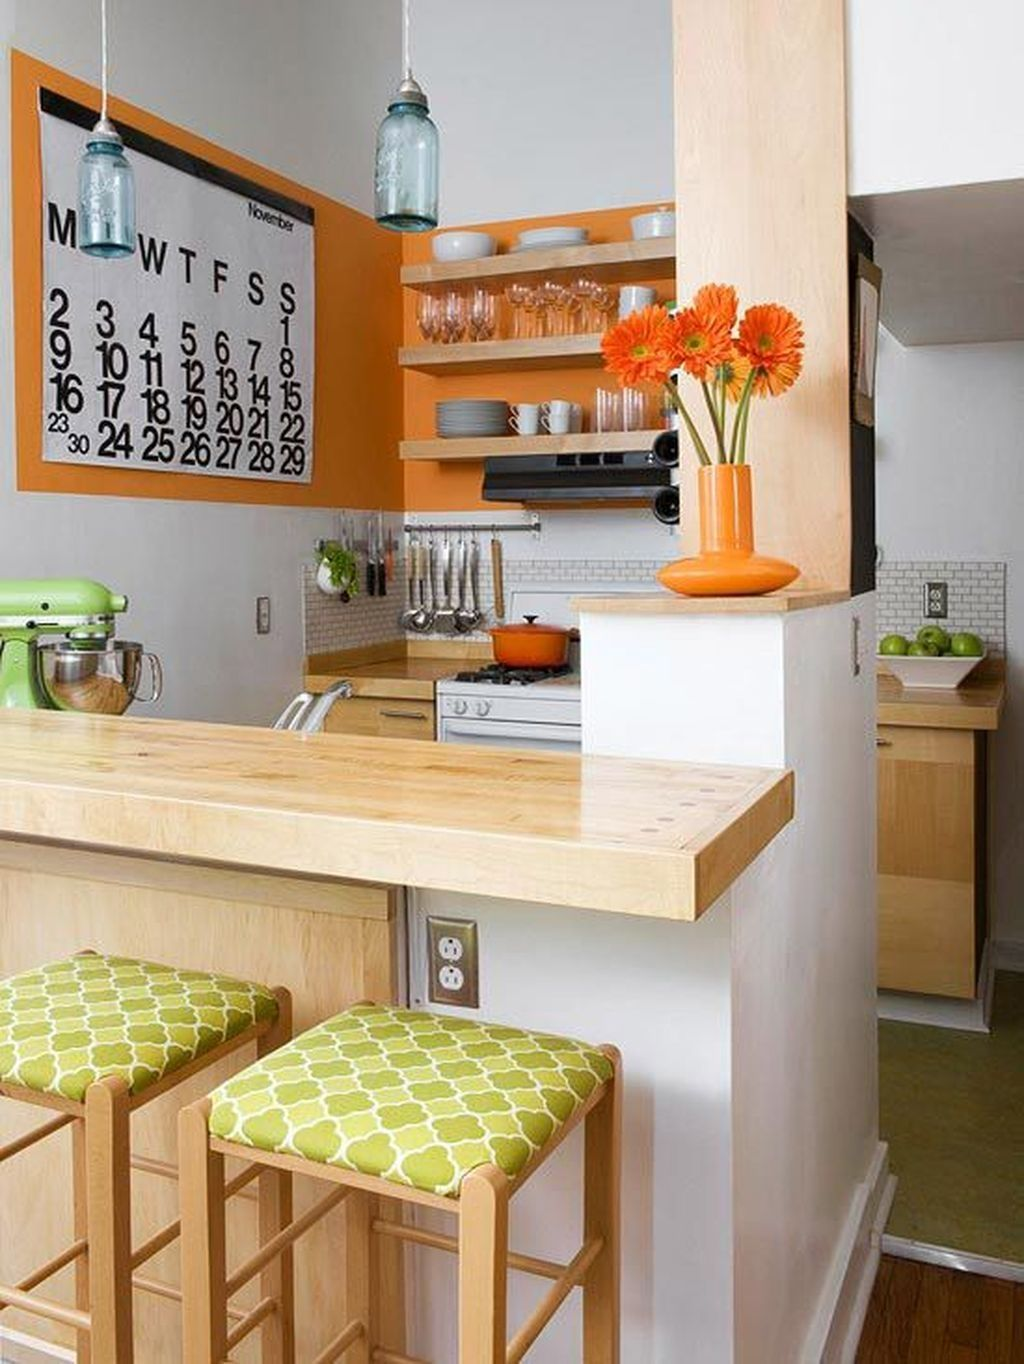 nice 48 lovely small kitchen bar design ideas for apartment kitchen remodel small kitchen on kitchen ideas on a budget id=73784